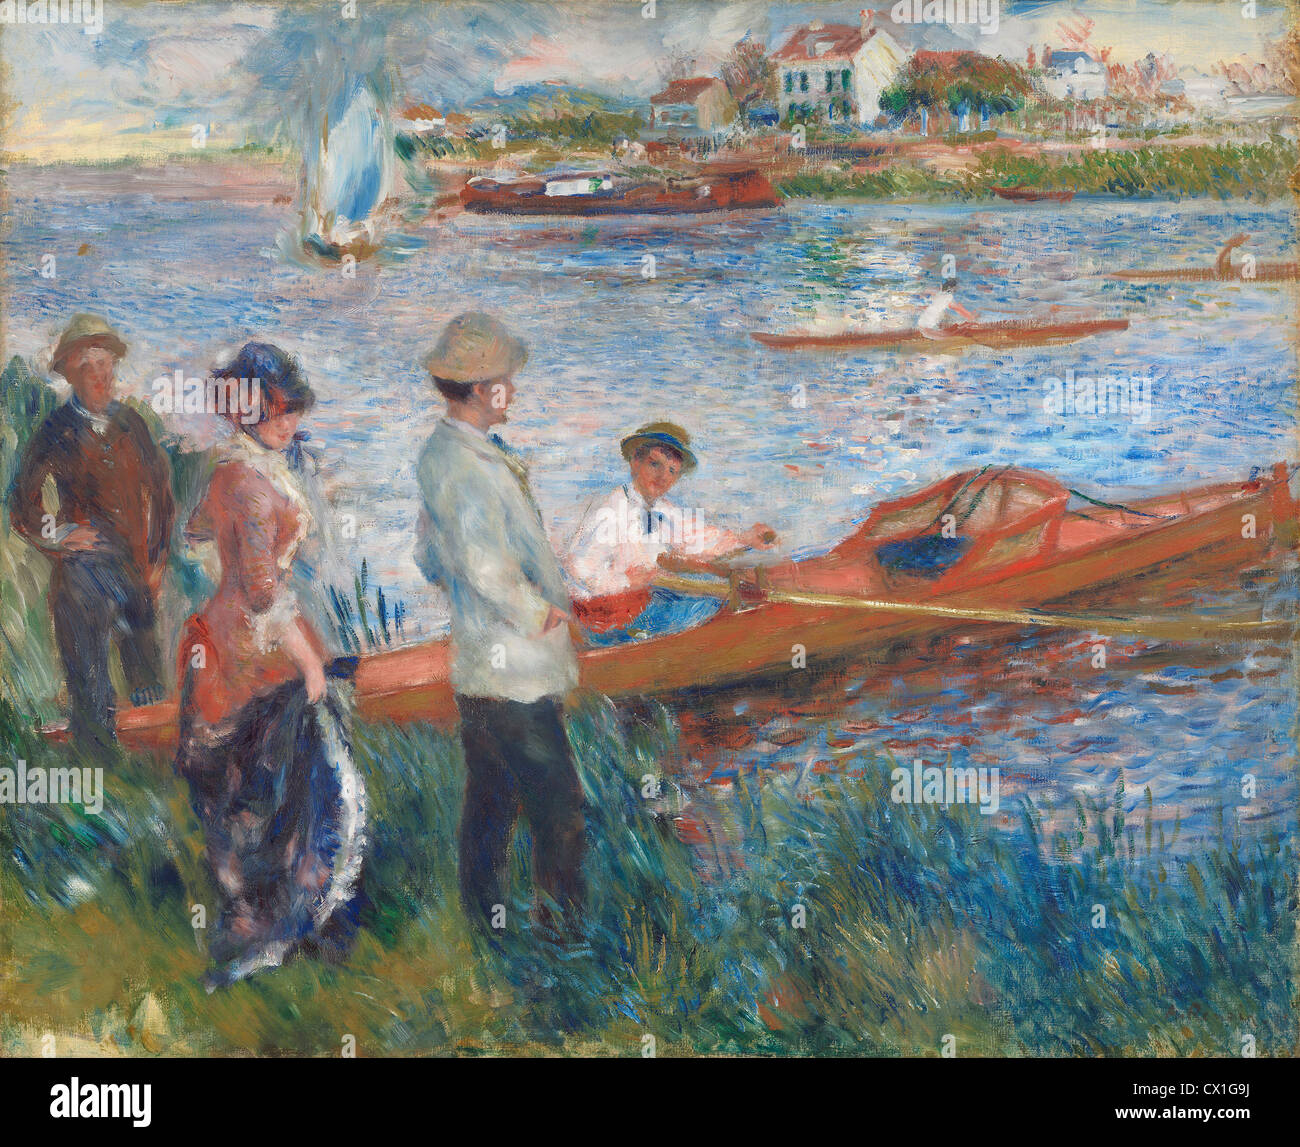 Auguste Renoir (French, 1841 - 1919 ), Oarsmen at Chatou, 1879, oil on canvas - Stock Image